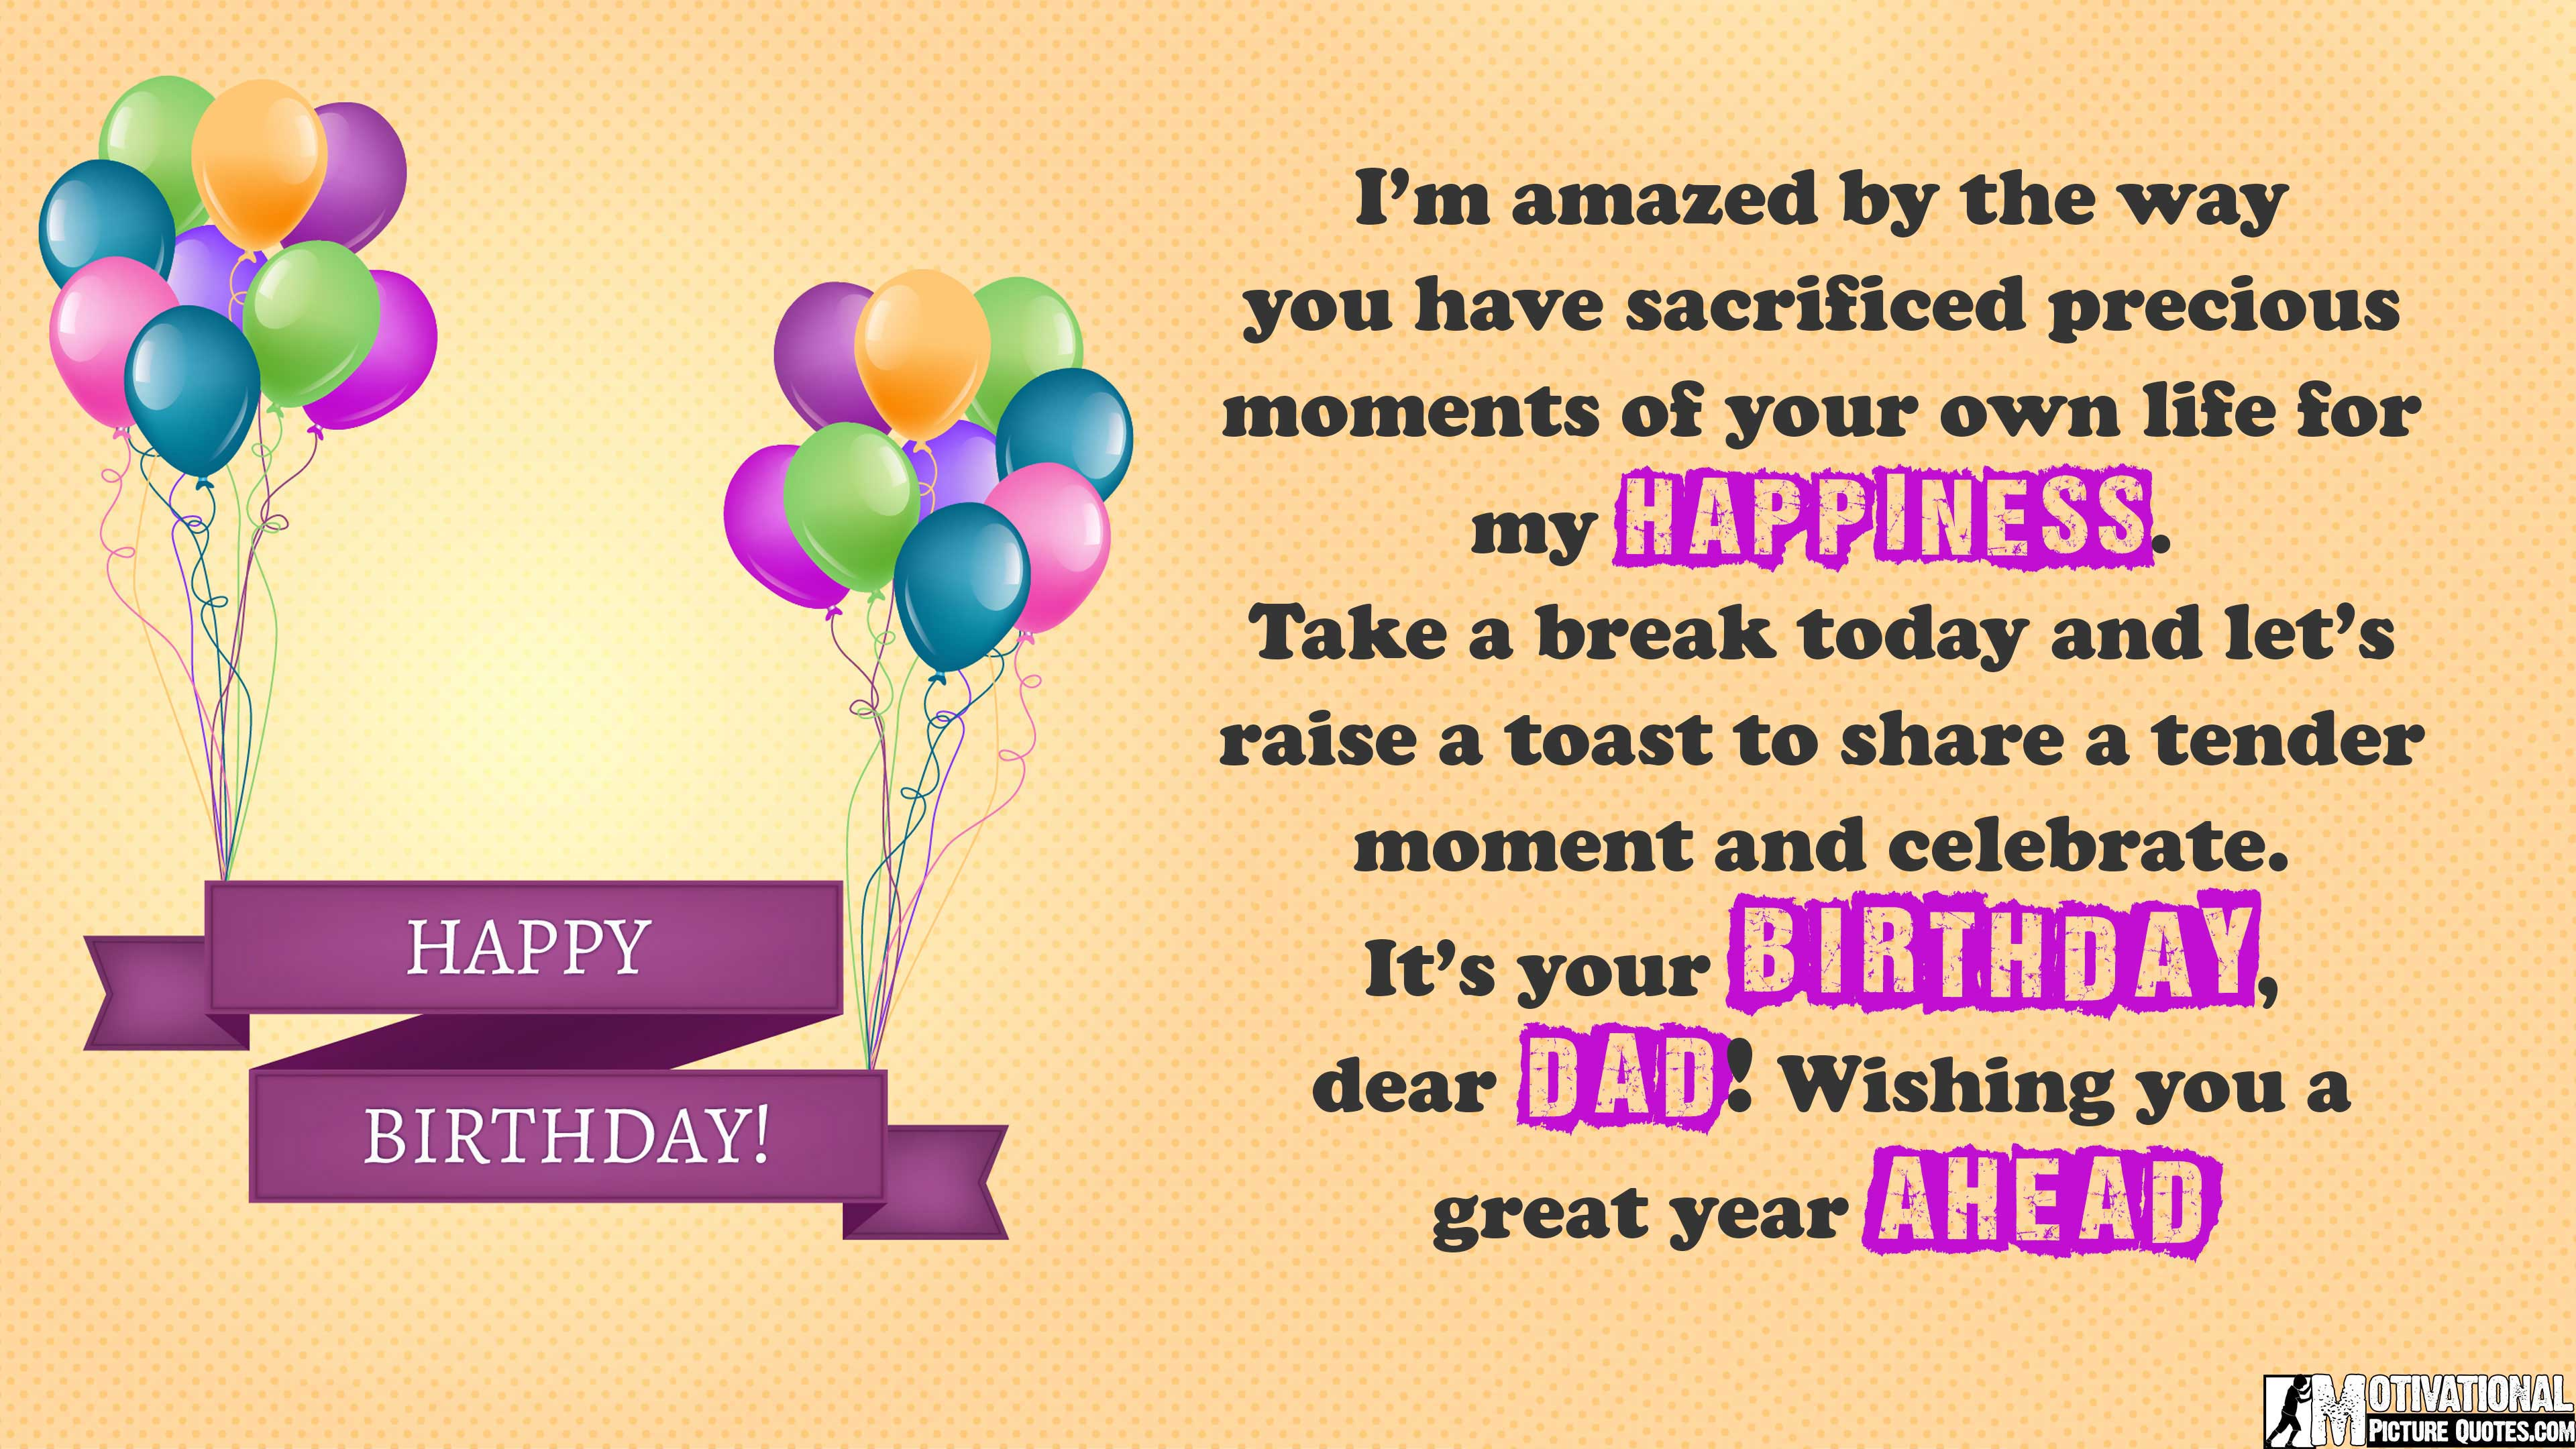 35 inspirational birthday quotes images insbright happy birthday quotes dad kristyandbryce Image collections